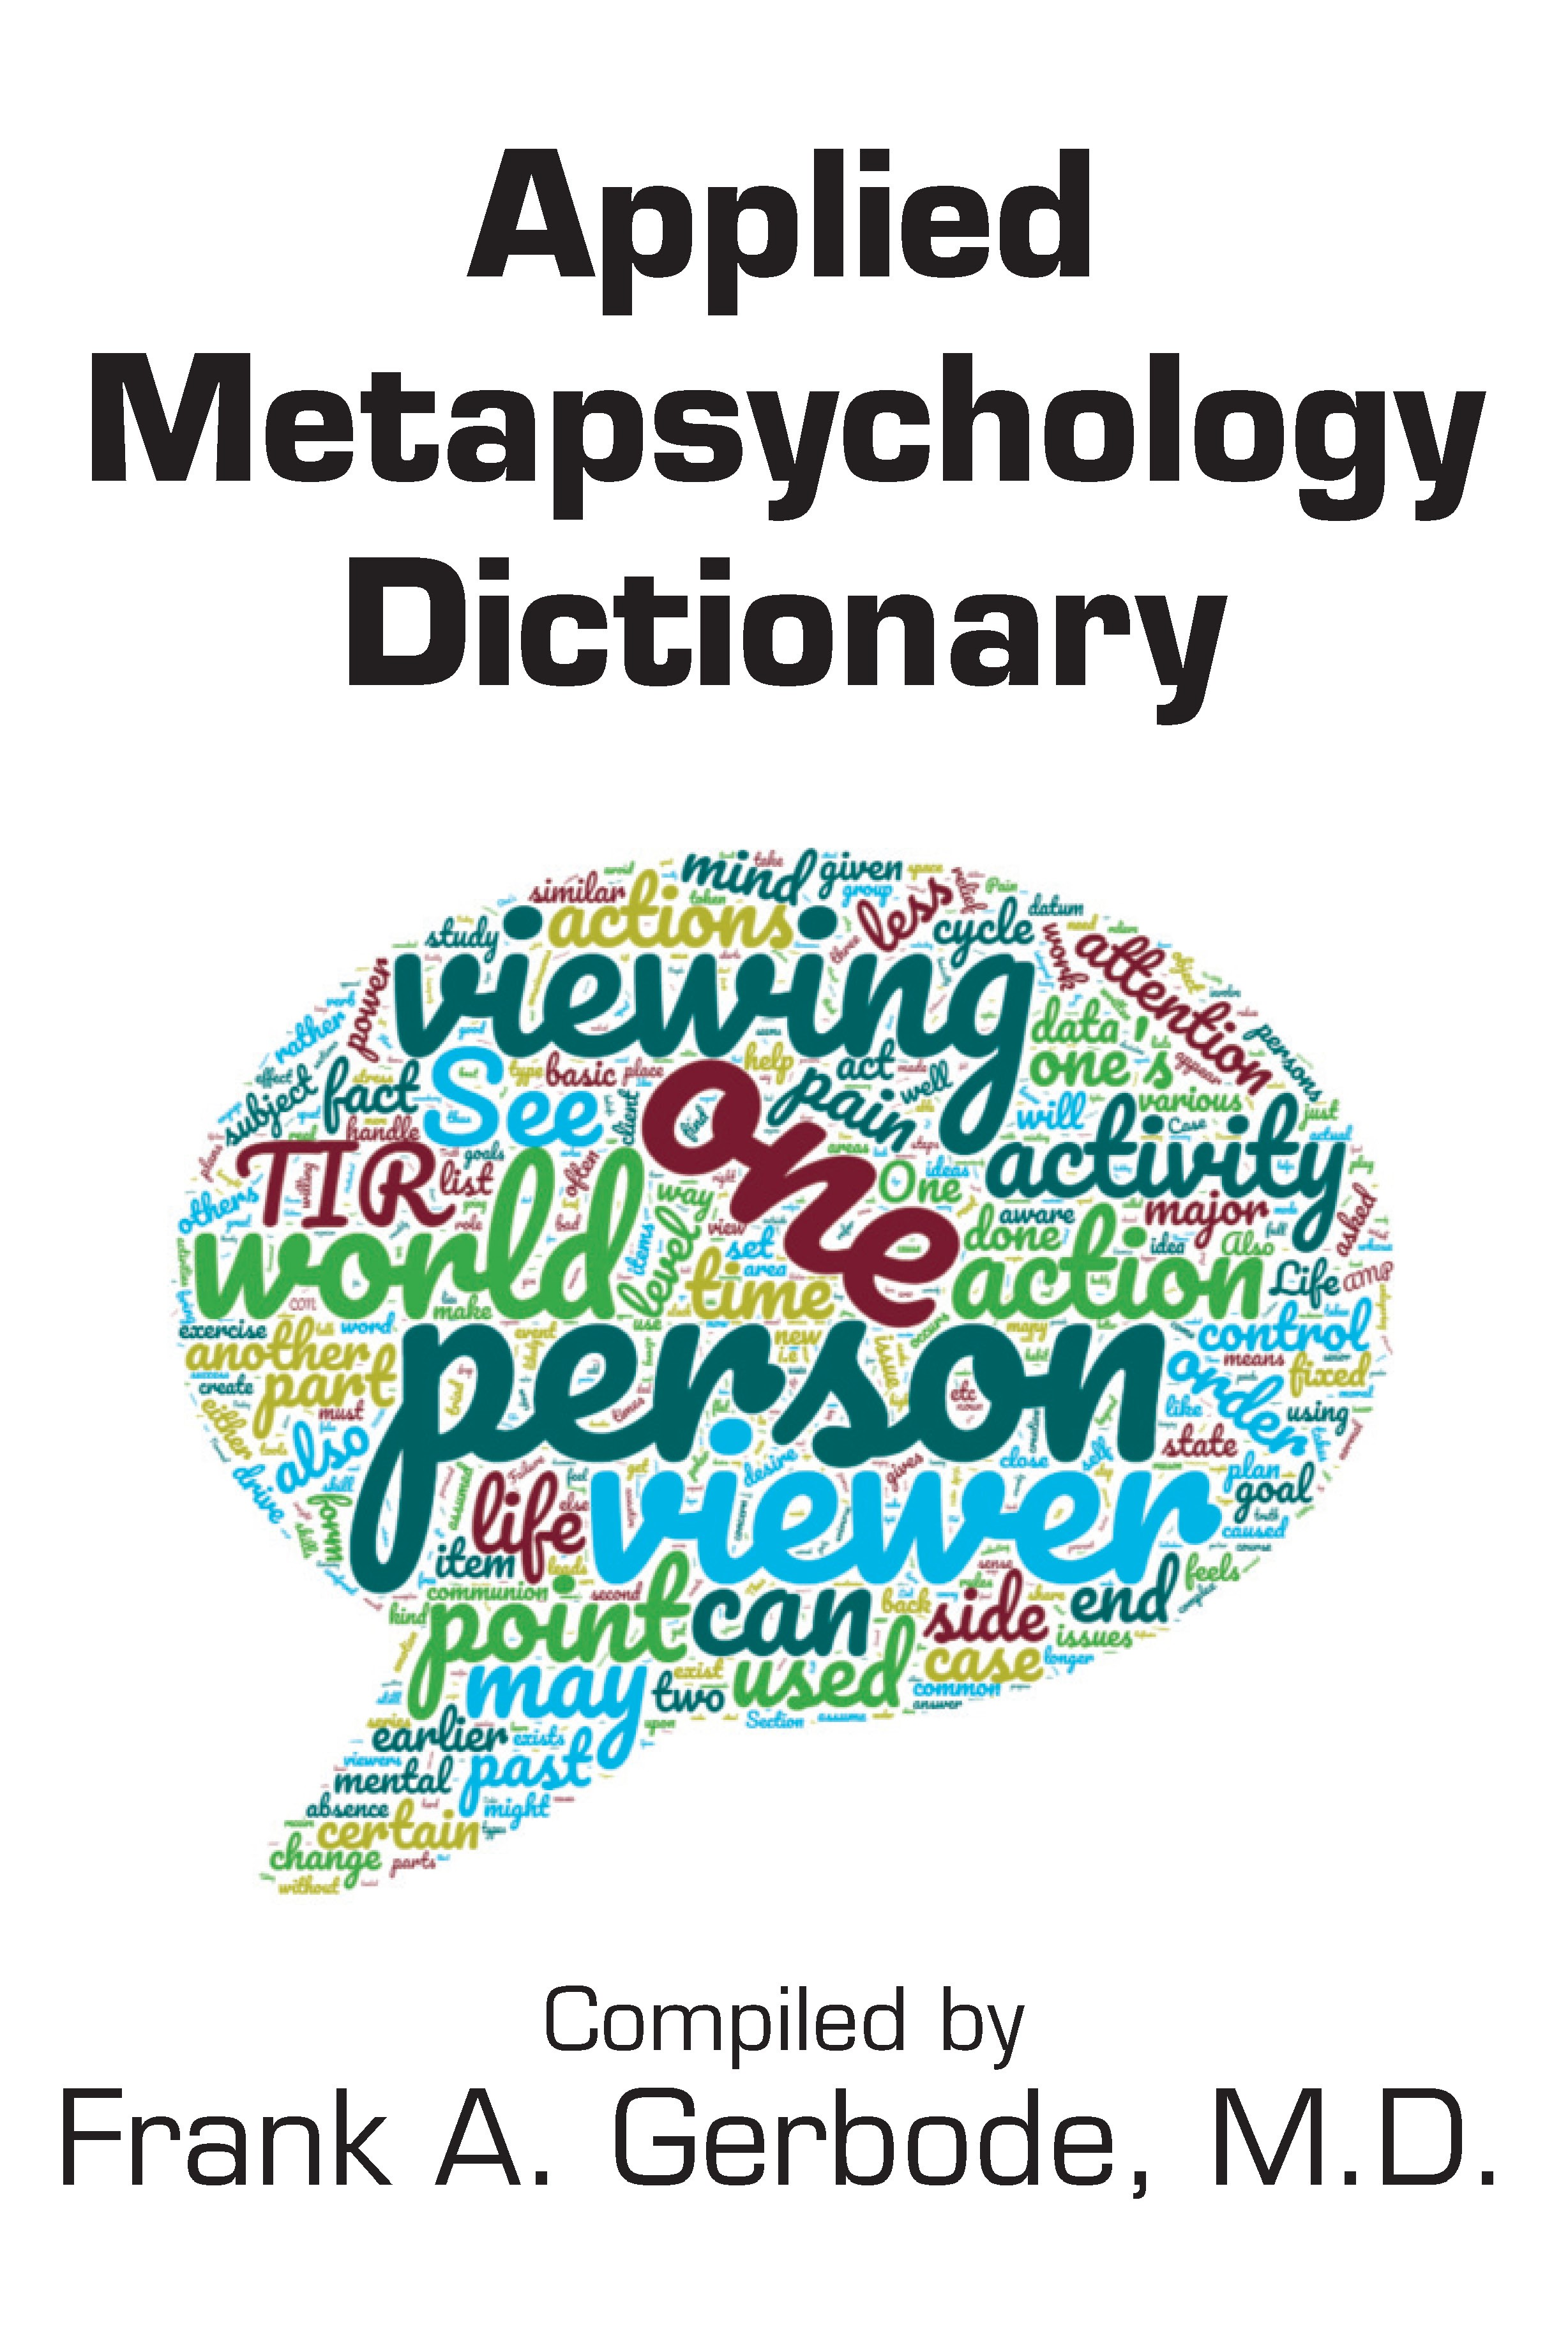 Applied Metapsychology Dictionary, Frank A. Gerbode, M.D.